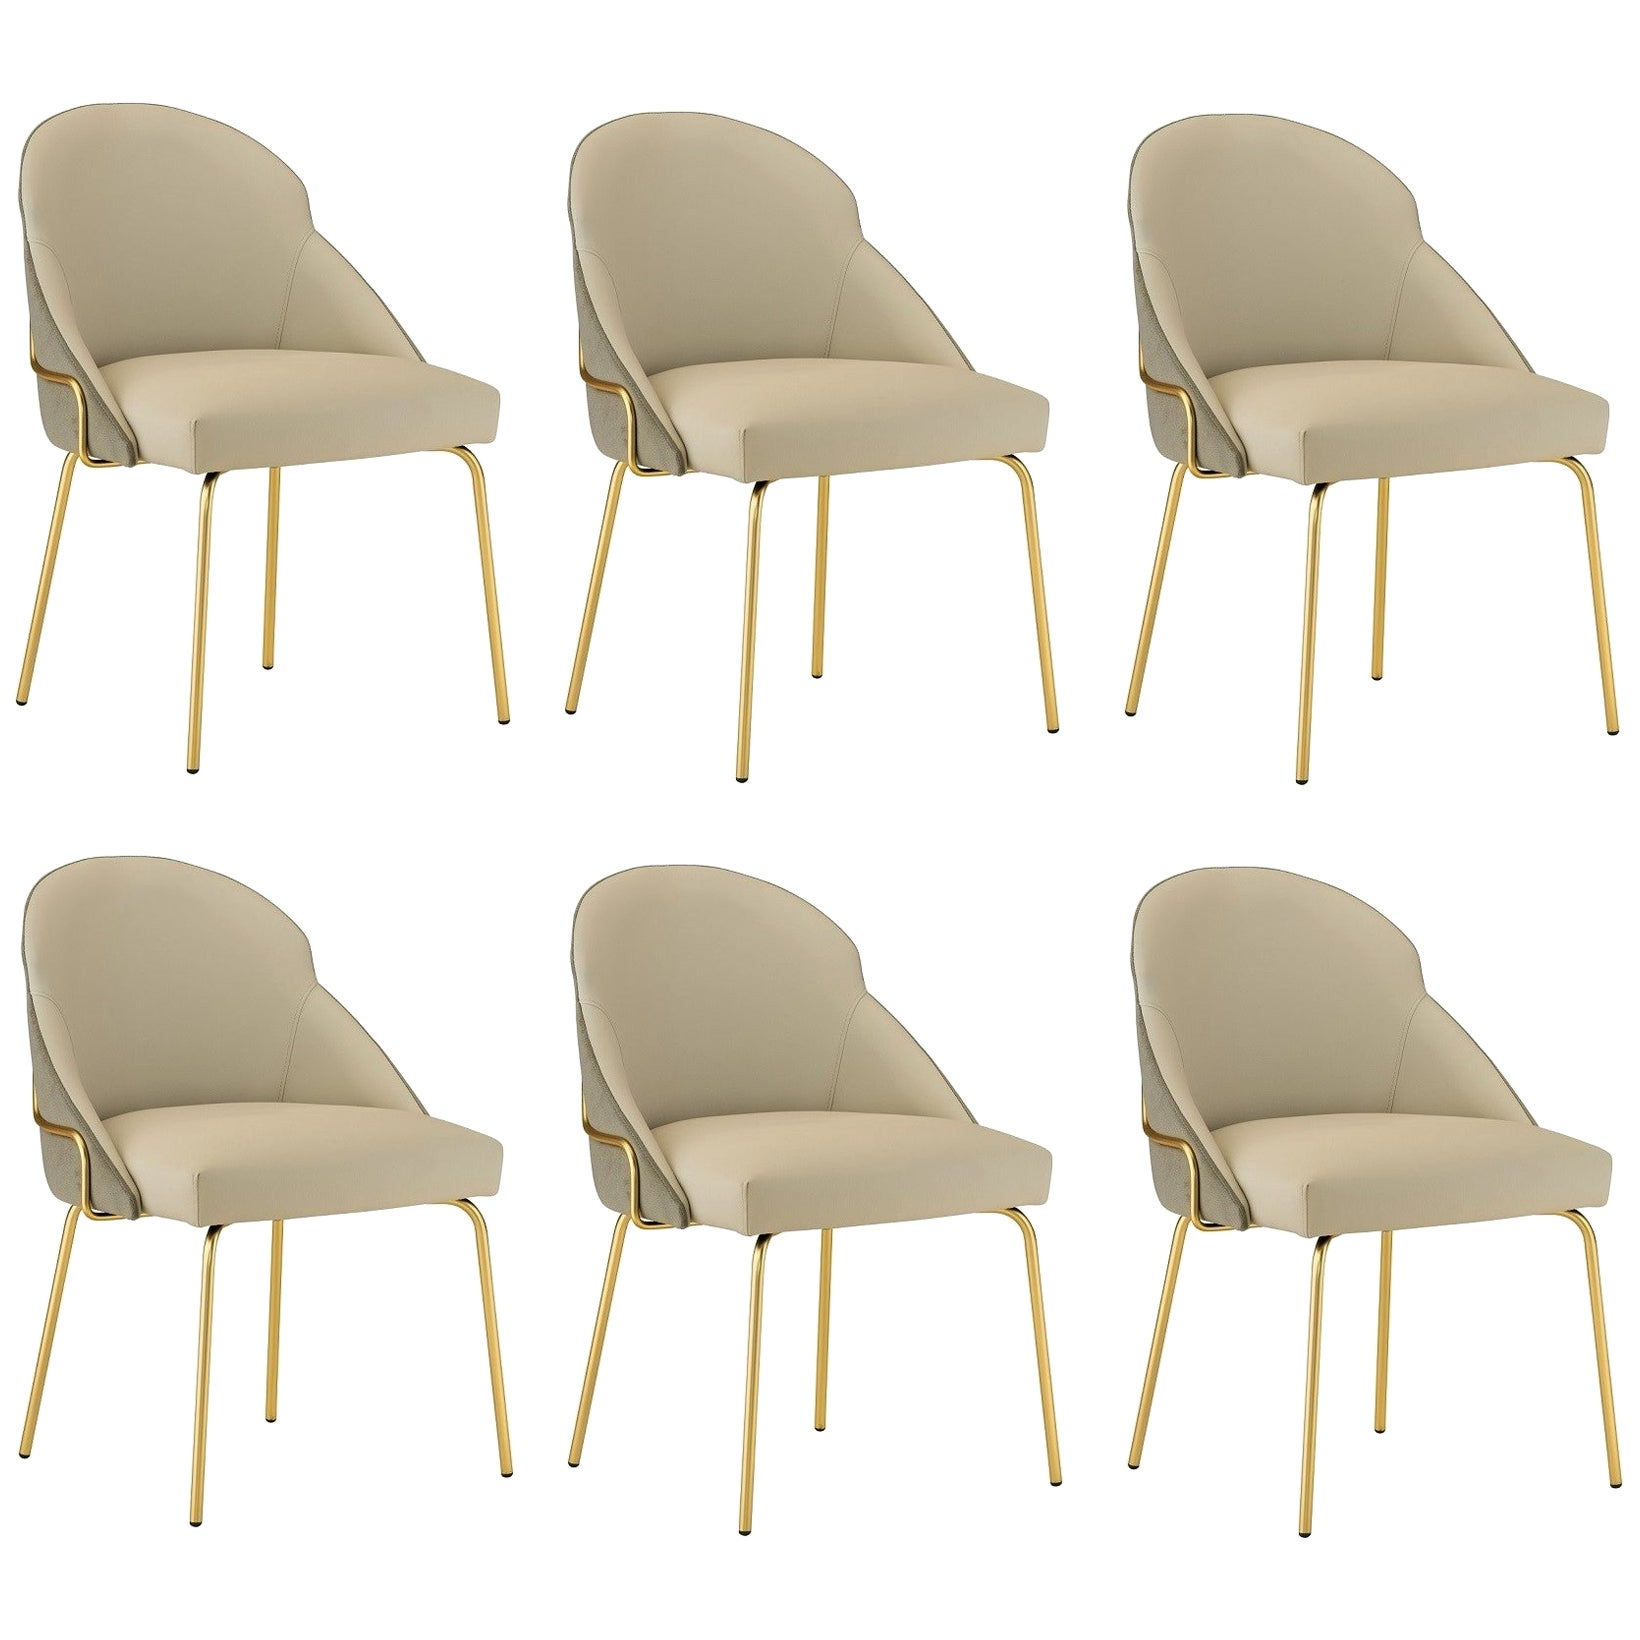 Contemporary Upholstered Dining Chairs in Brass Coating